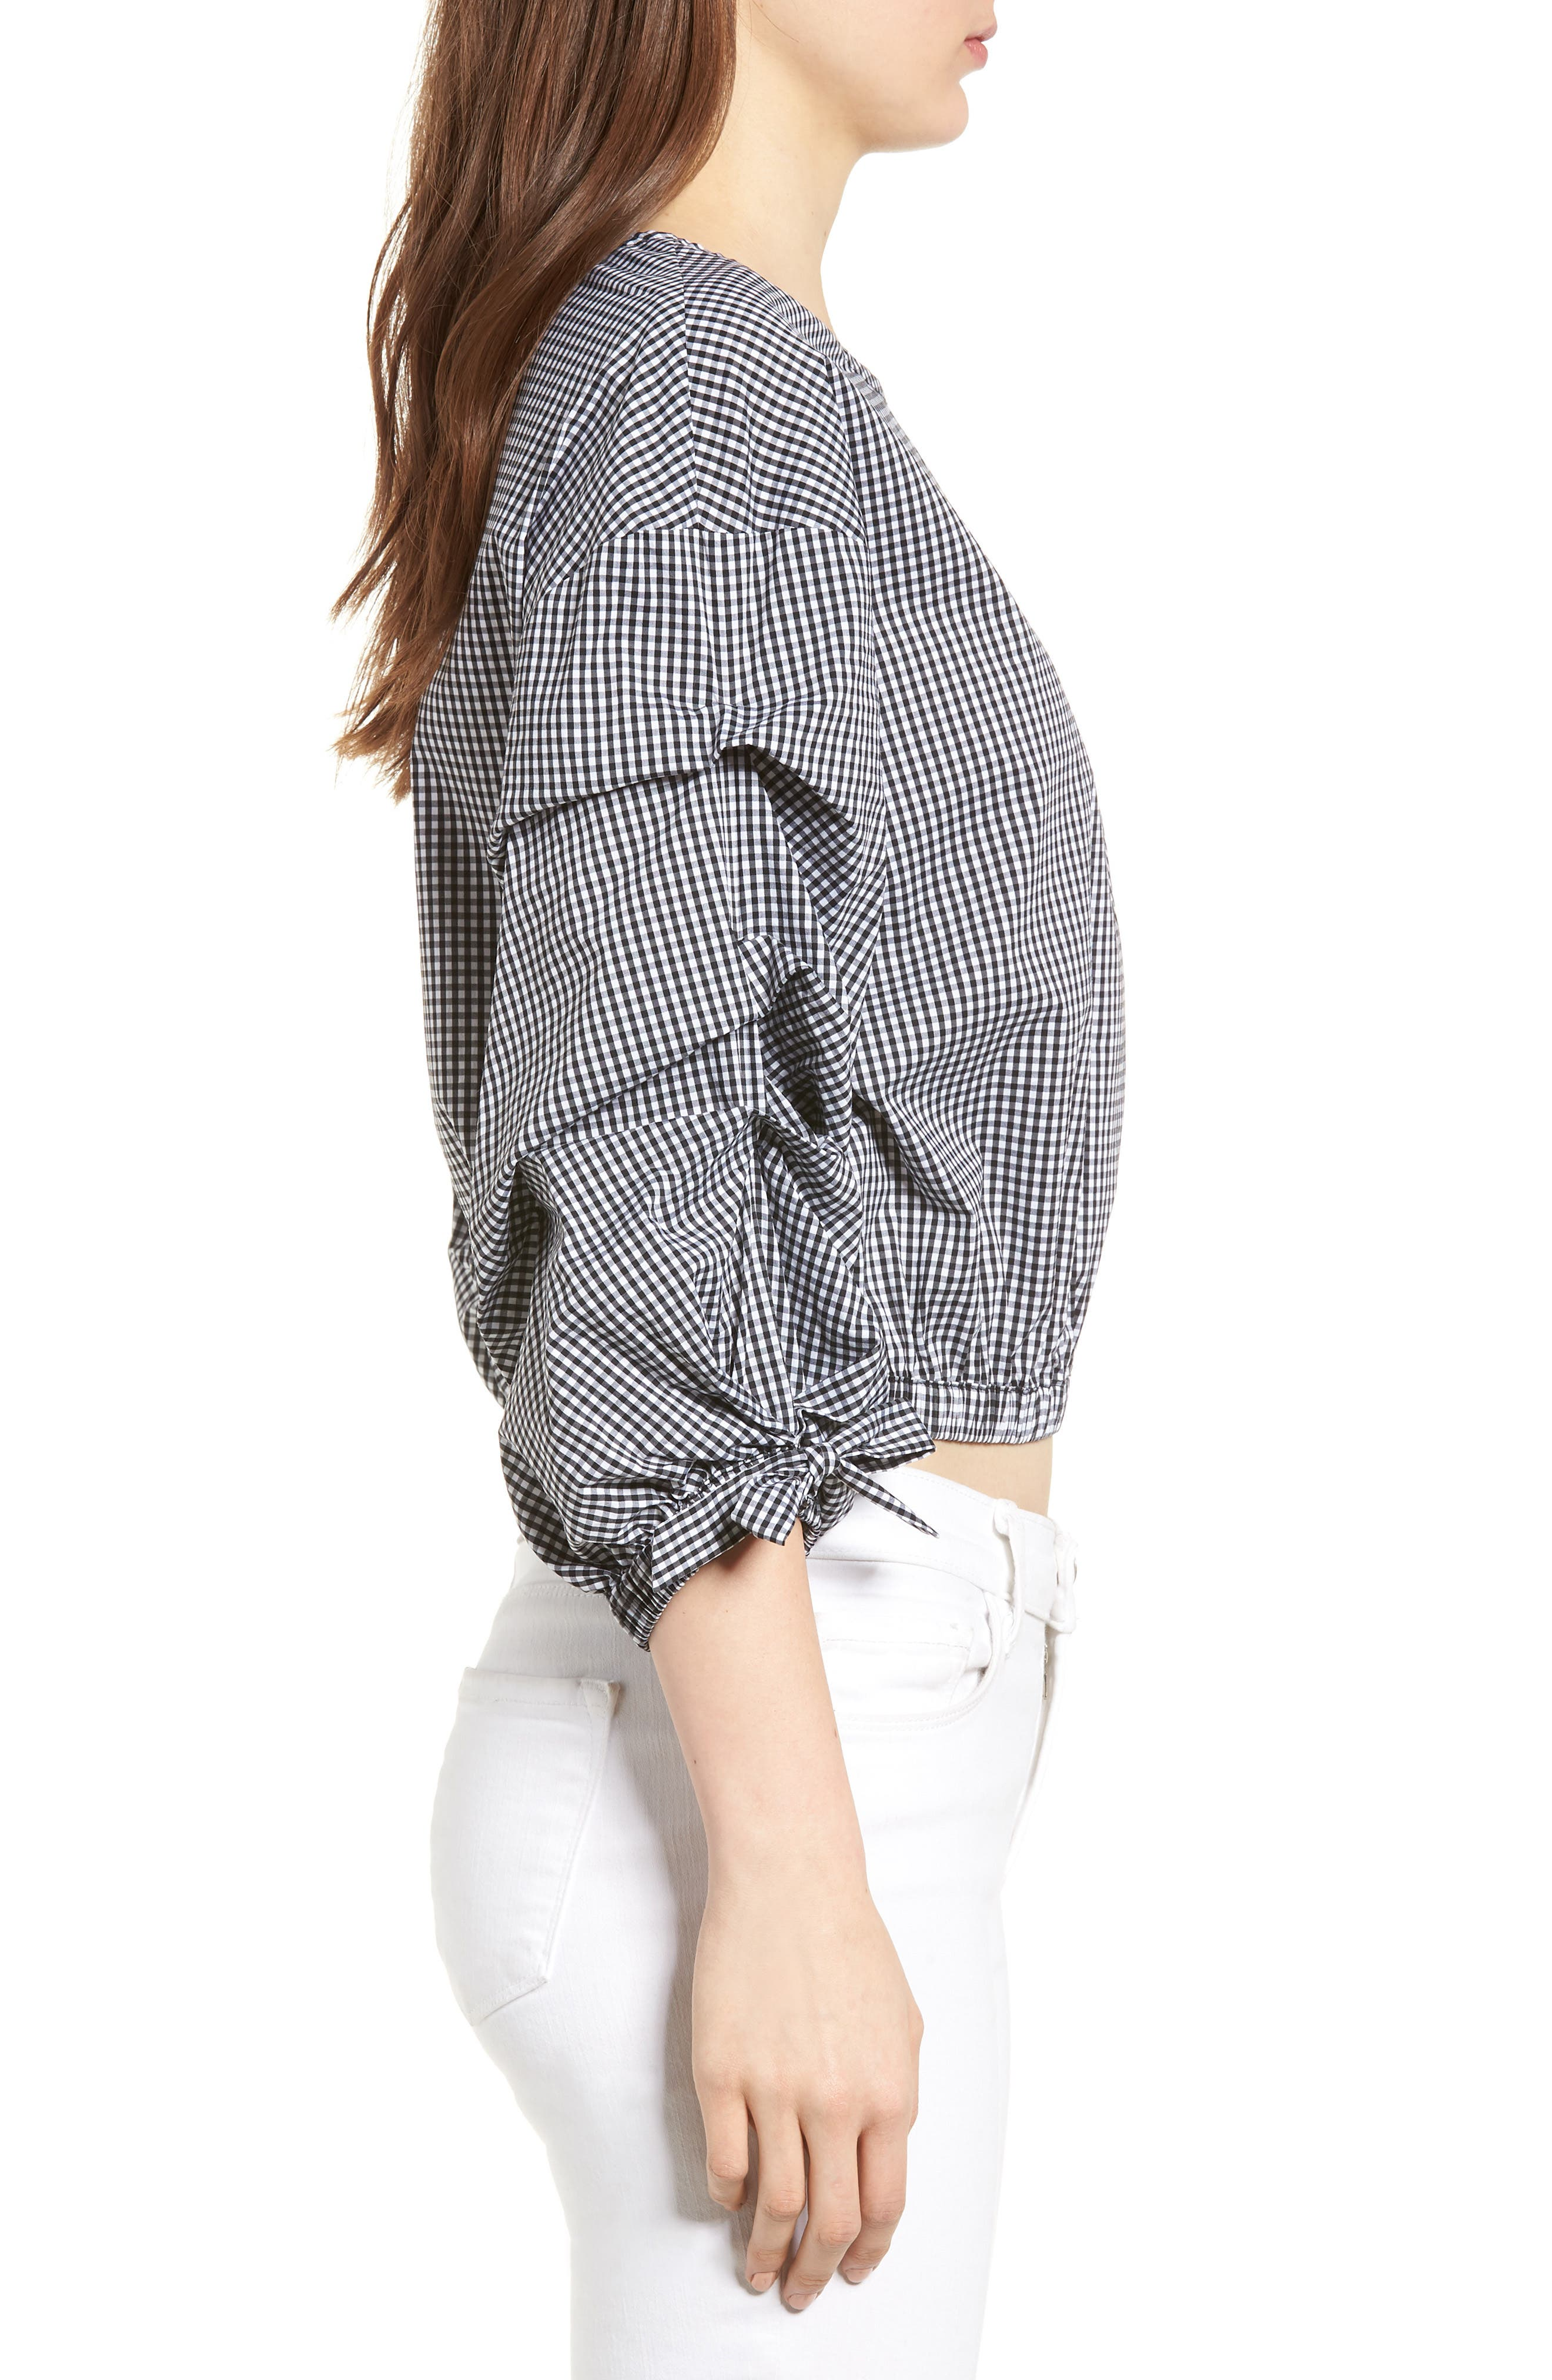 Bishop + Young Ruched Sleeve Blouse,                             Alternate thumbnail 3, color,                             001